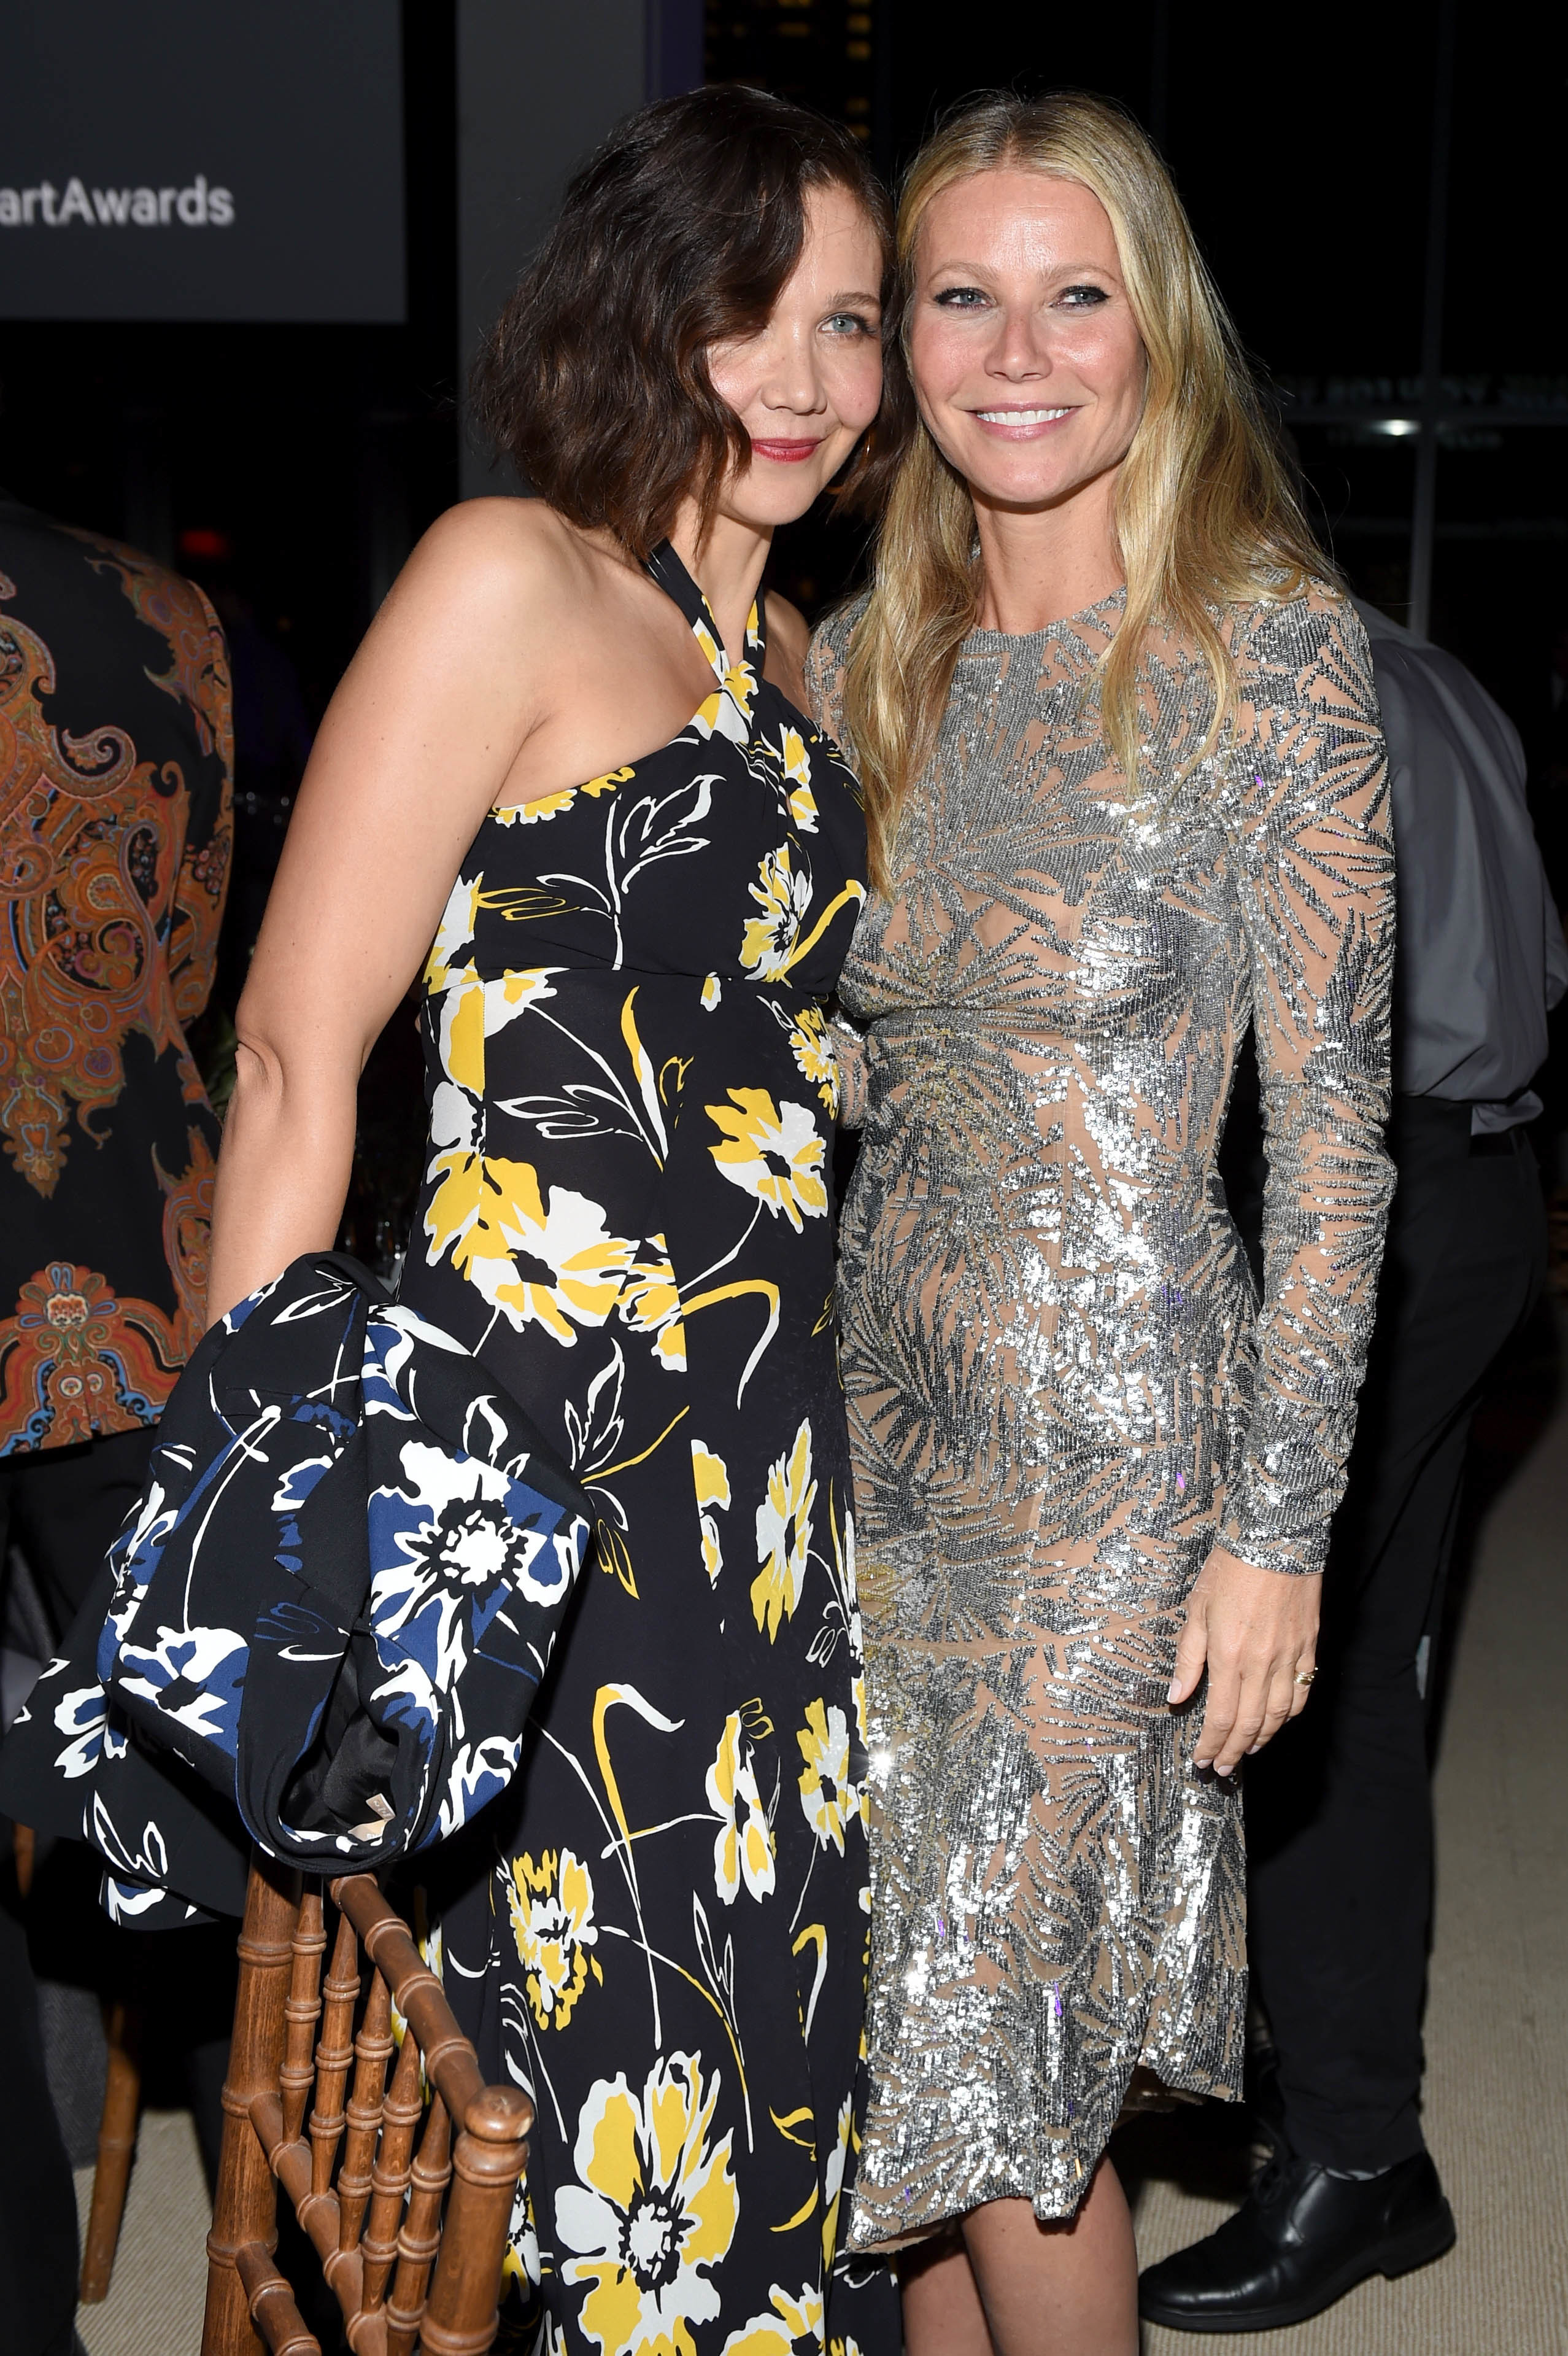 Maggie Gyllenhaal and Gwyneth Paltrow attend the 11th Annual God's Love We Deliver Golden Heart Awards in New York City on Oct. 16, 2017.